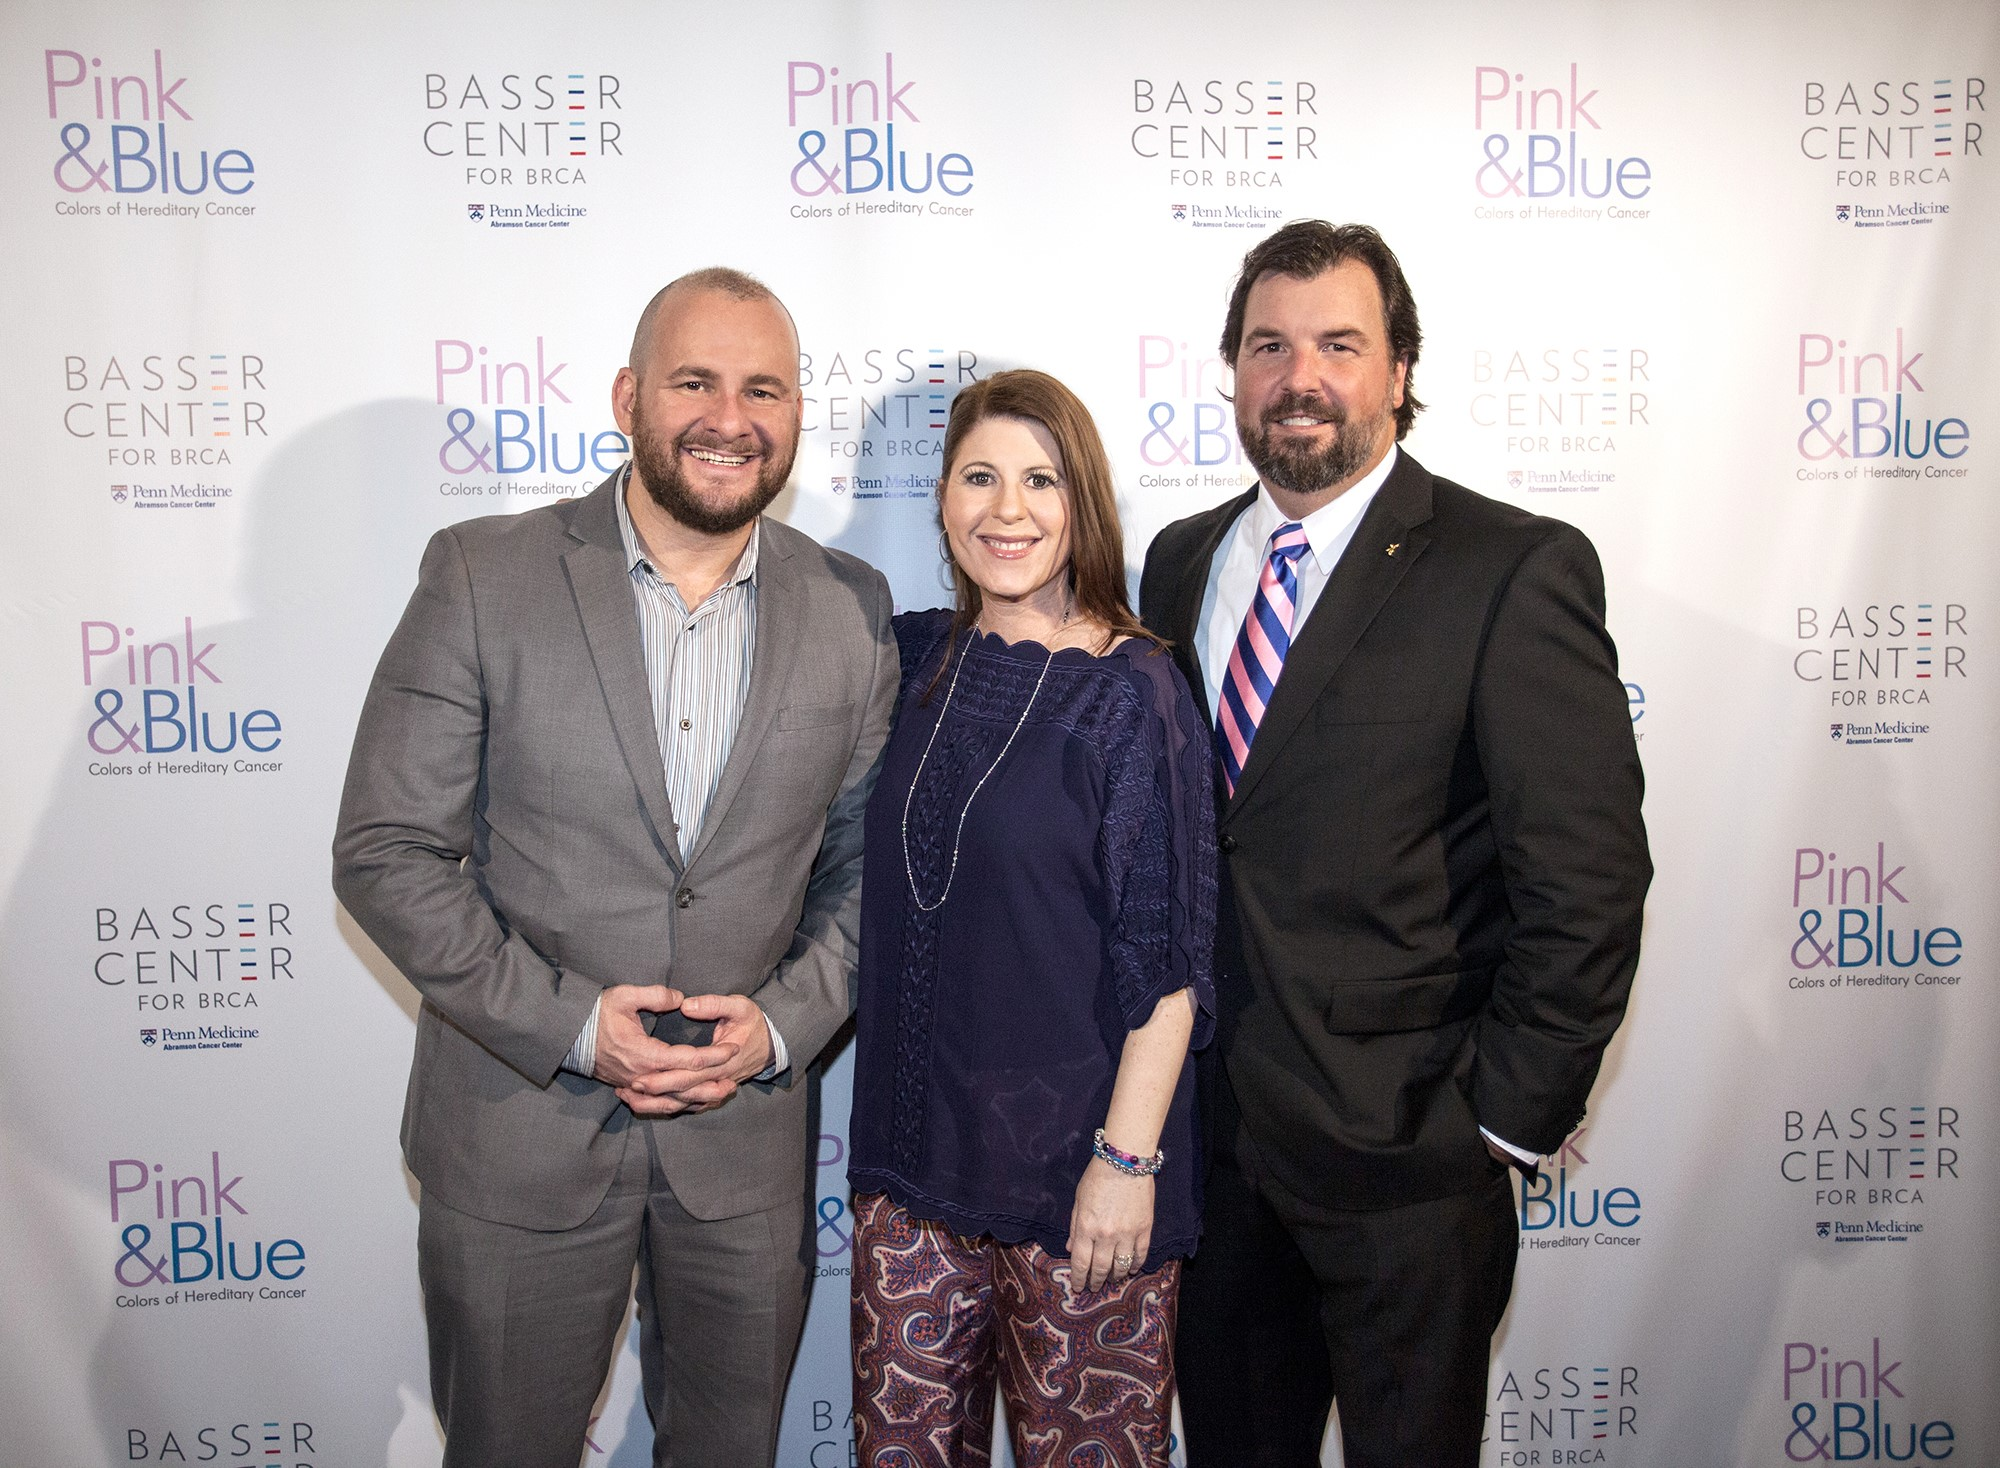 """PINK & BLUE: COLORS OF HEREDITARY CANCER"" - Red Carpet Premiere - October 2015"